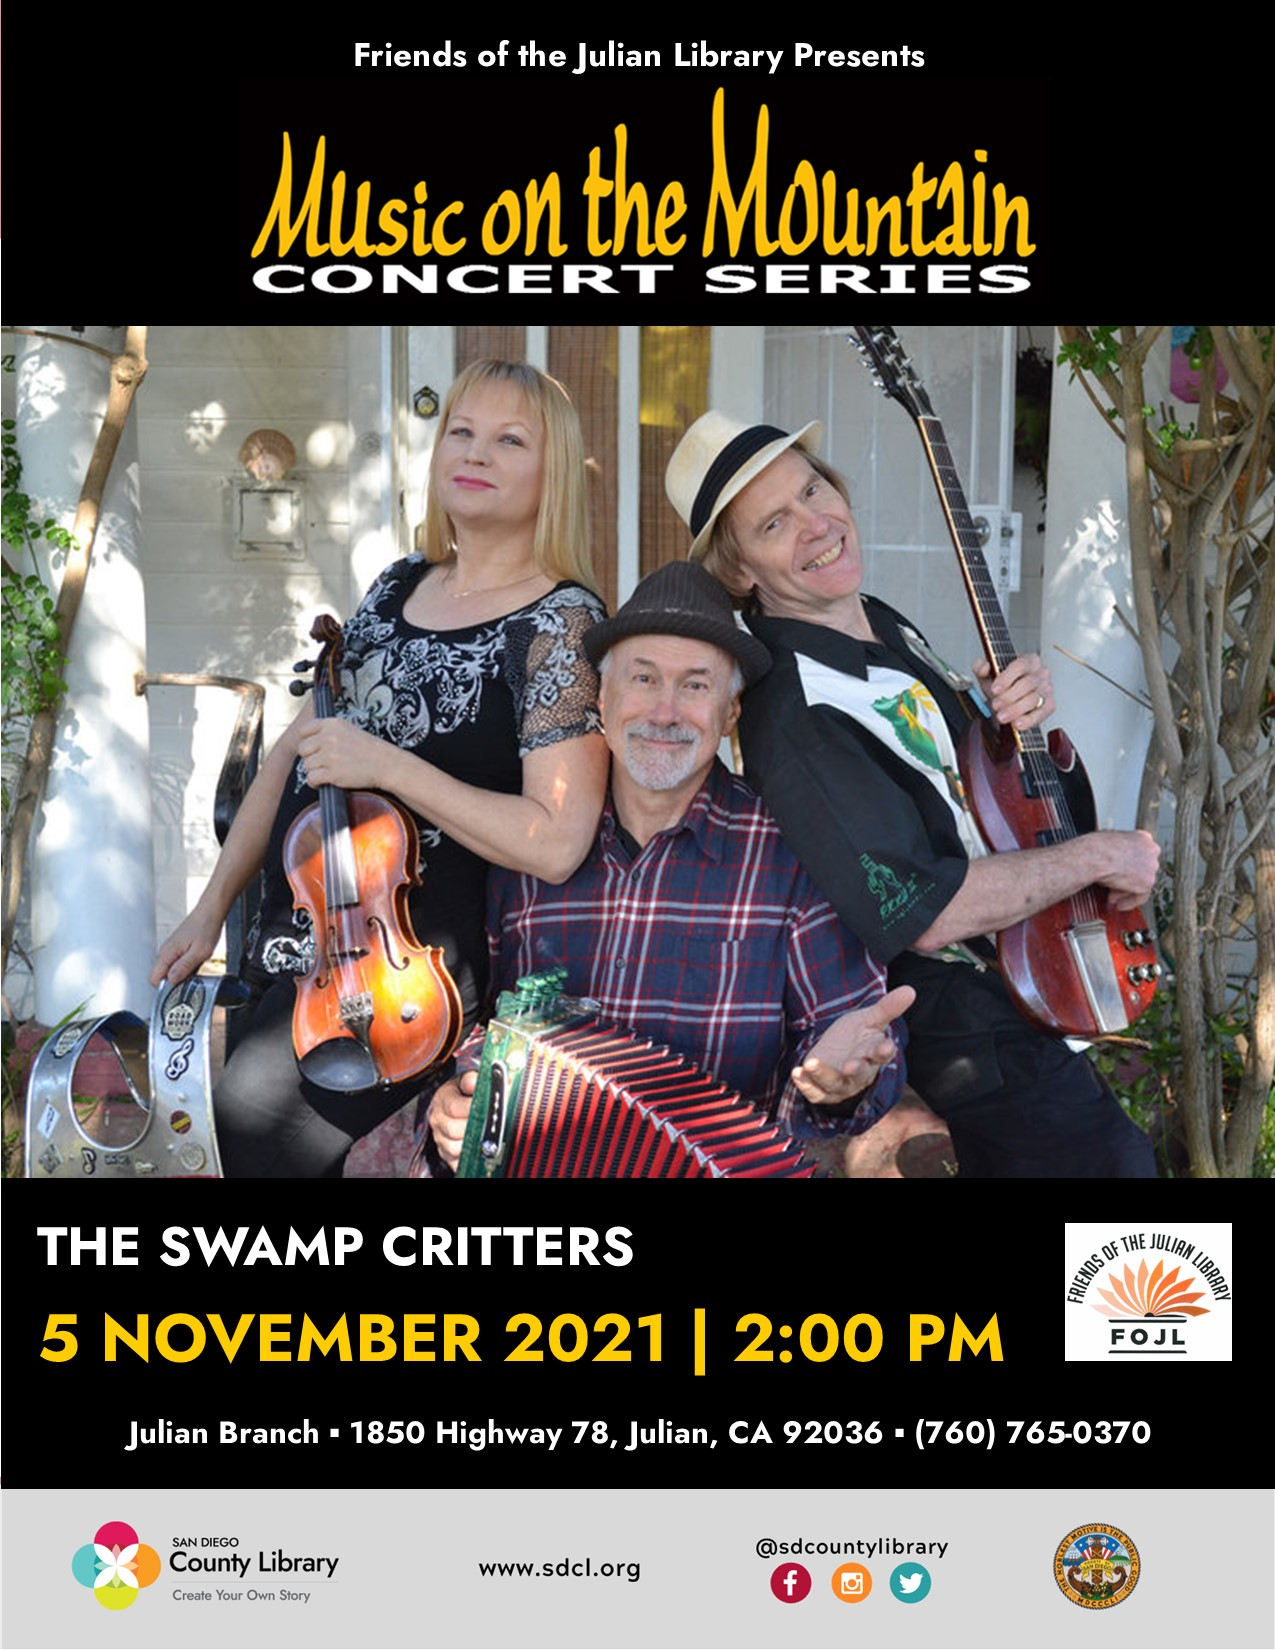 The Swamp Critters (NOV 2021) Music on the mountain concert series Poster